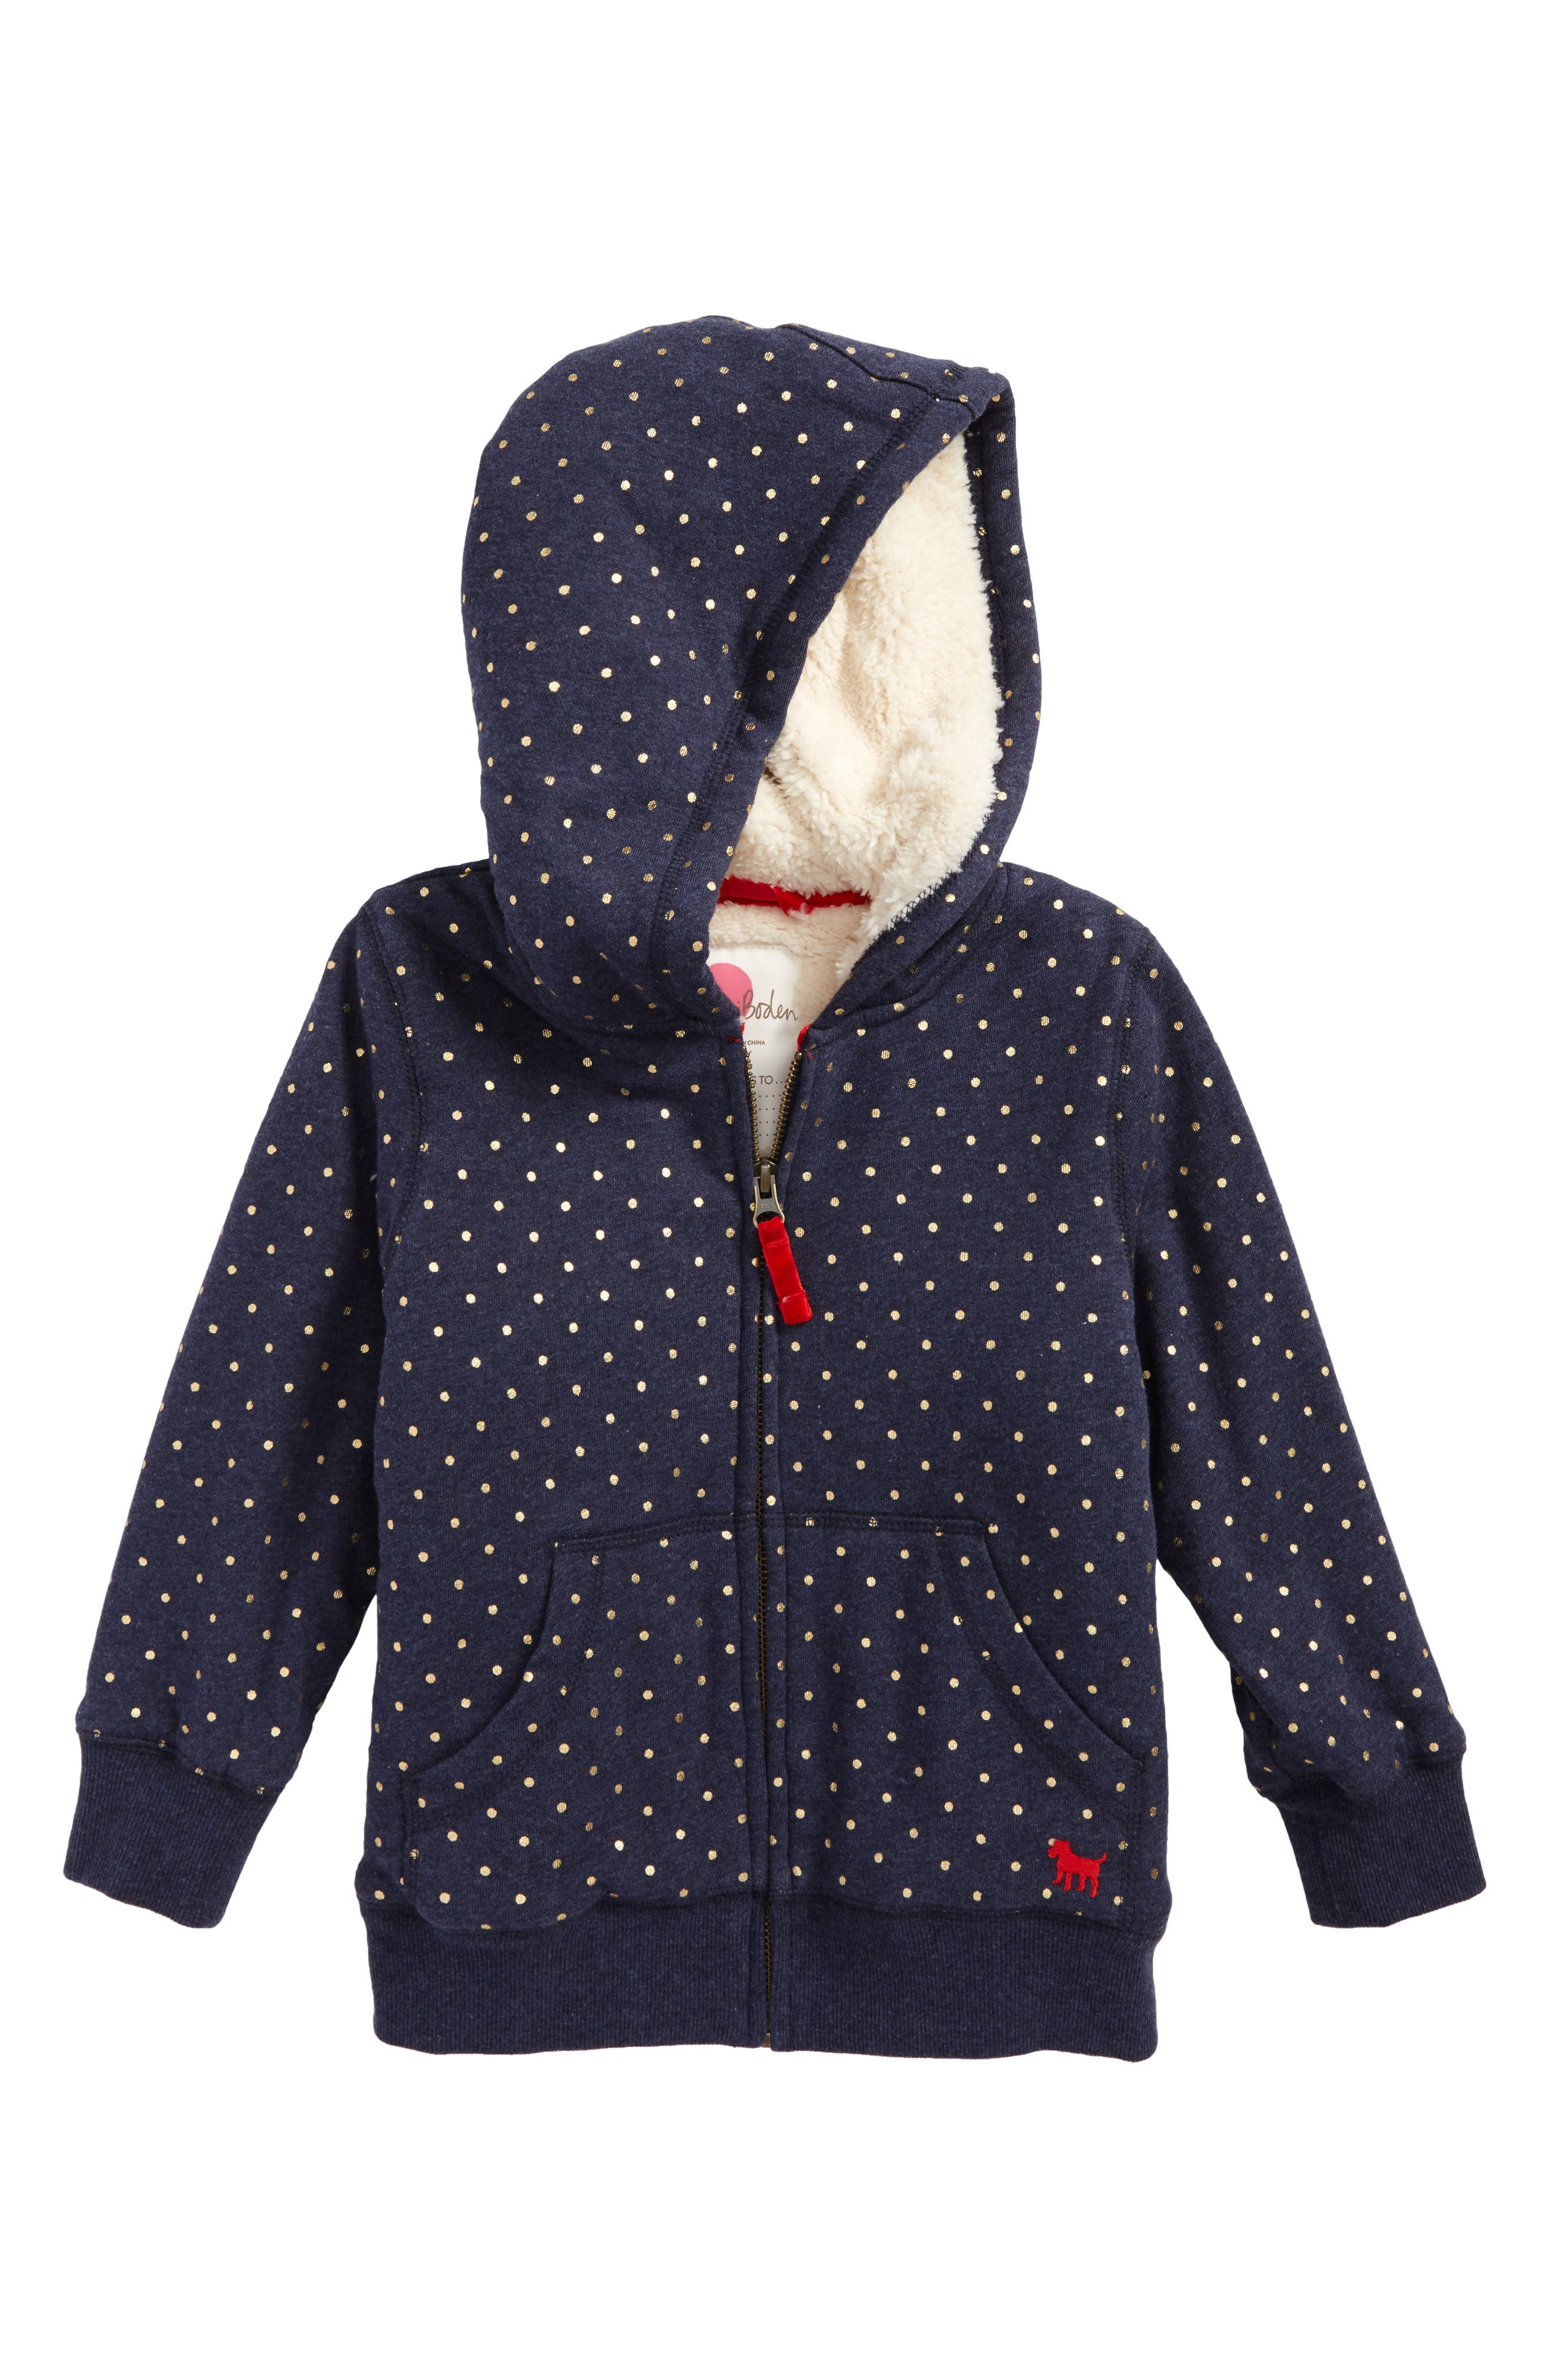 Boden Print Shaggy Lined Hoodie,                         Main,                         color, 414